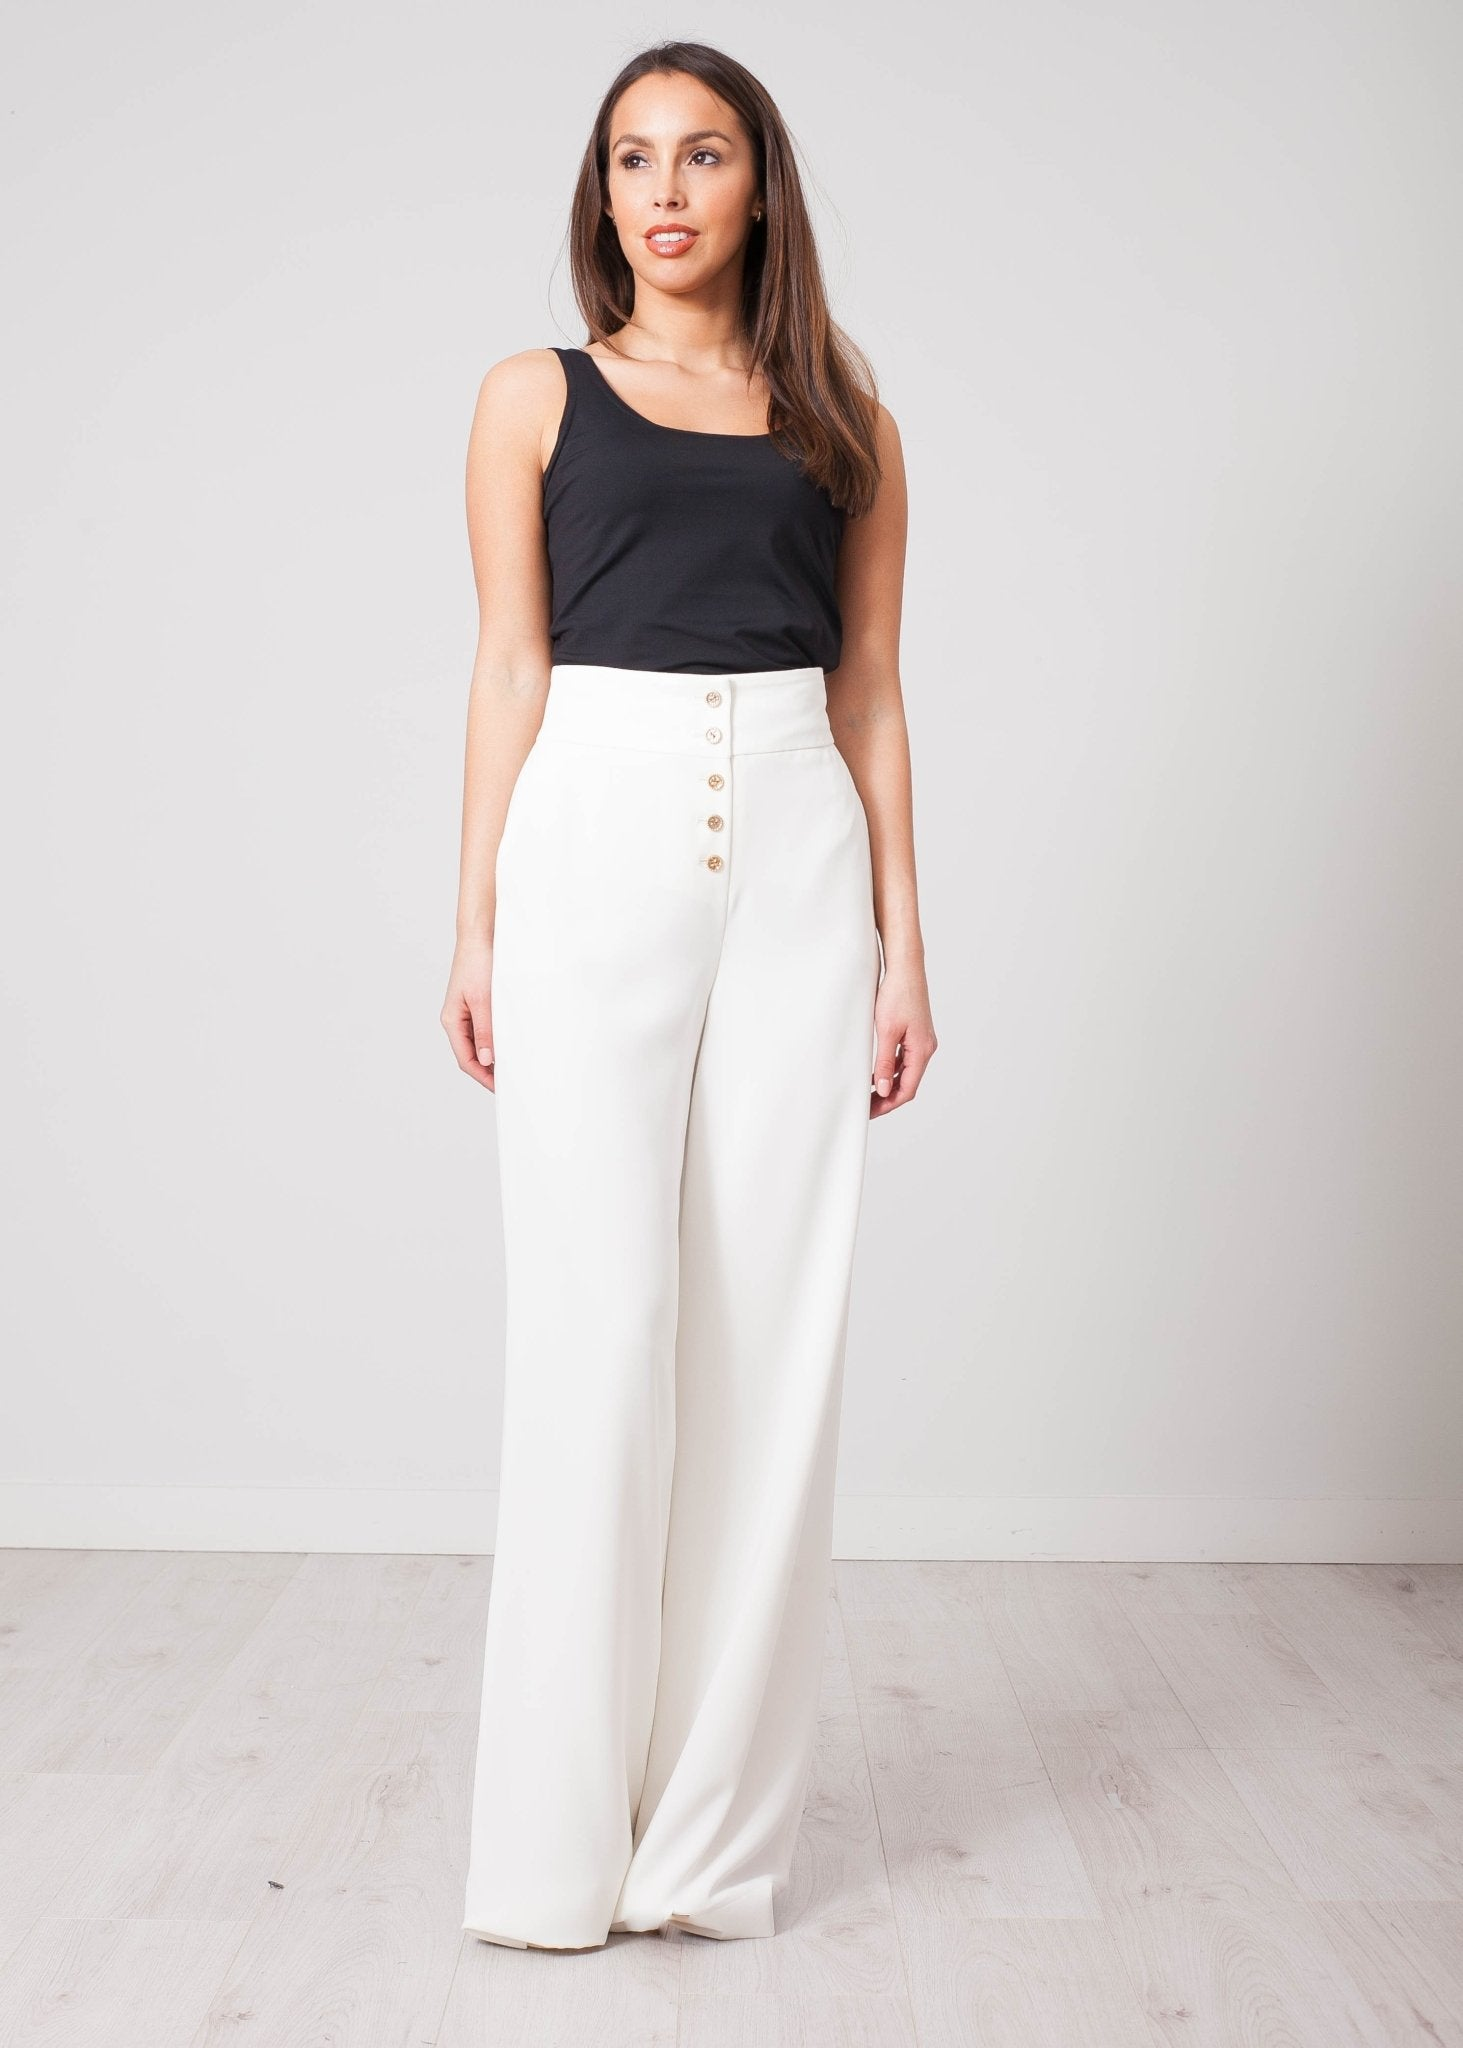 Aliyah White Trousers - The Walk in Wardrobe